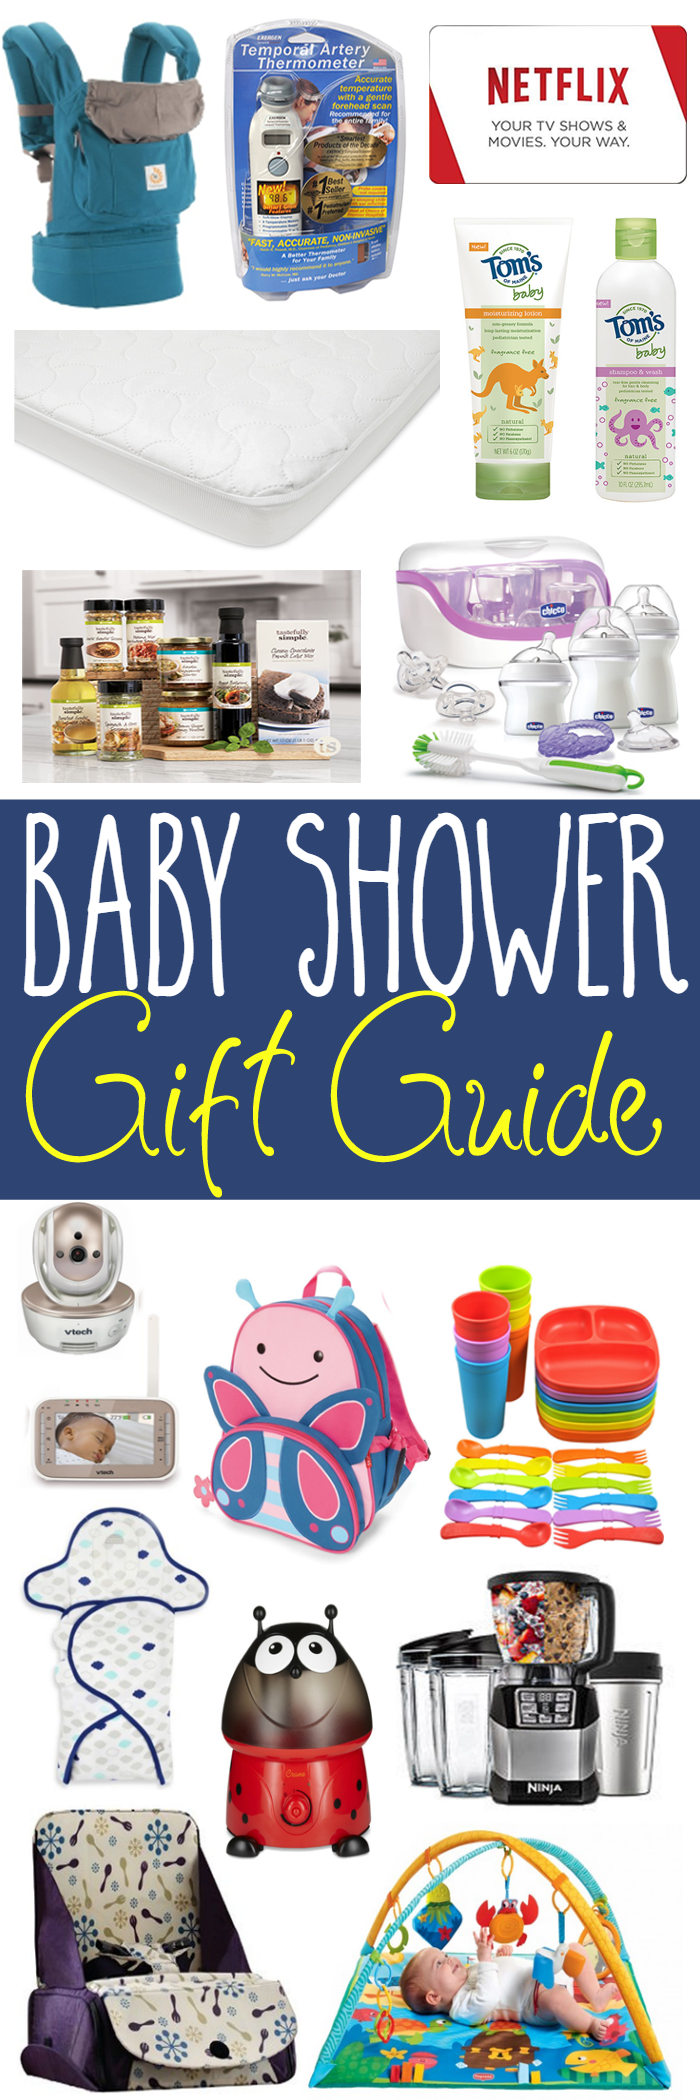 baby shower gift guide  mom's messy miracles, Baby shower